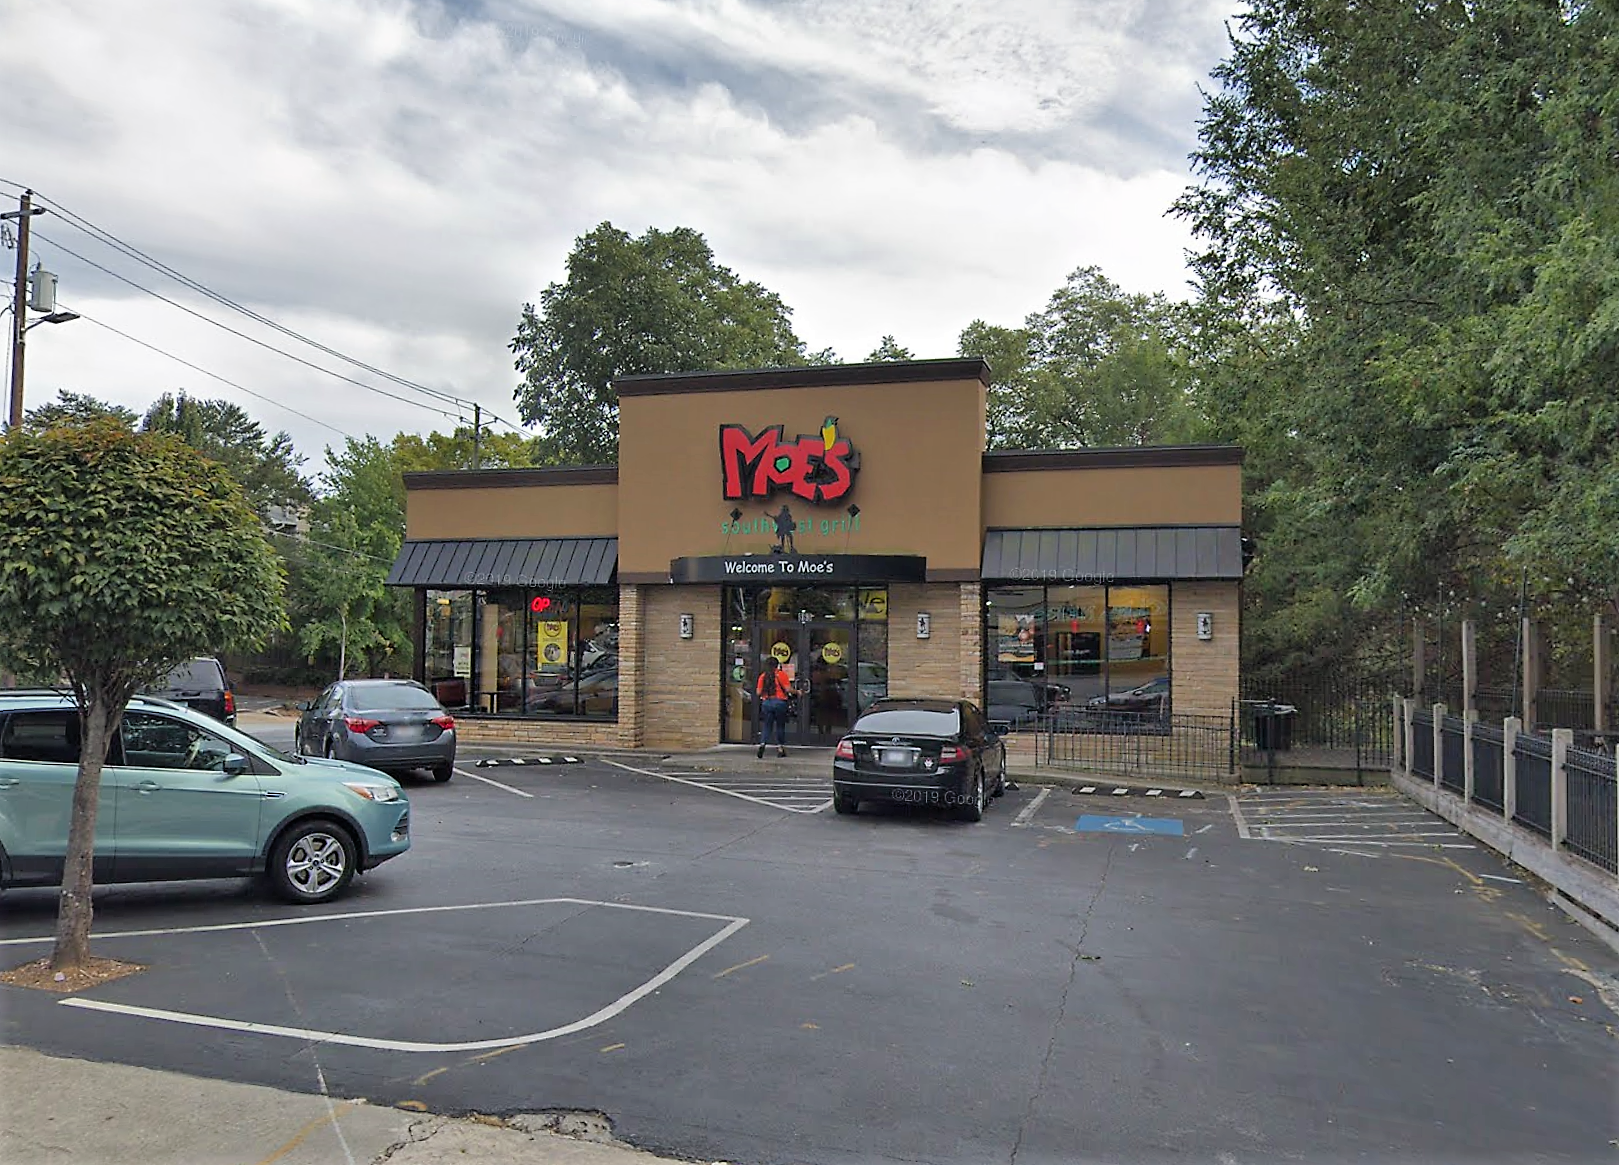 Up the street from Ponce City Market, Moe's restaurant could be razed for condo project